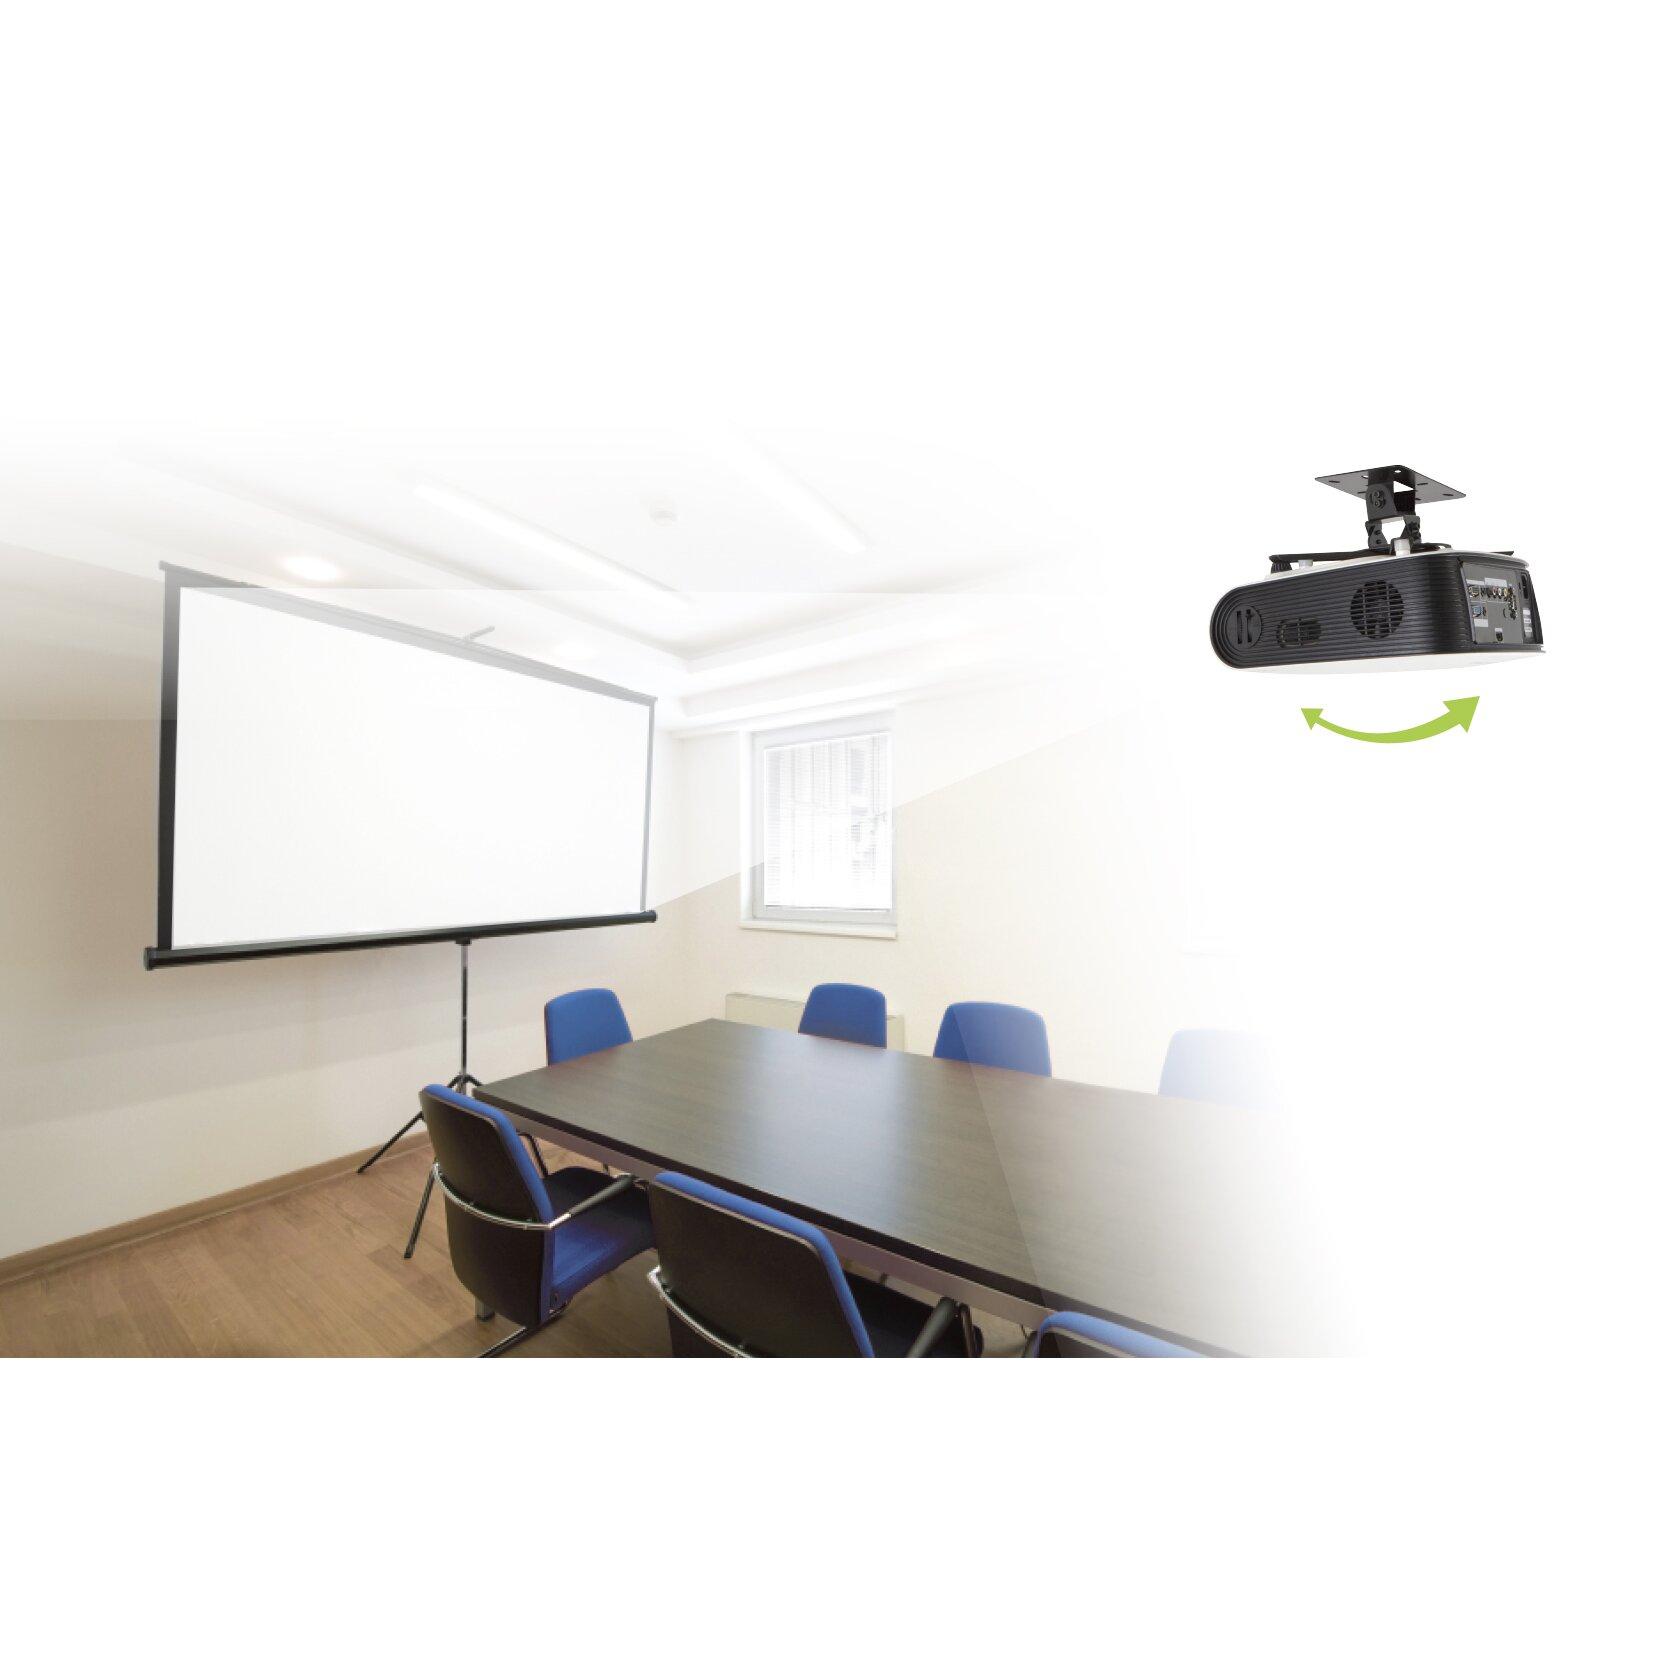 Avf Universal Projector For Ceiling And Wall Mount